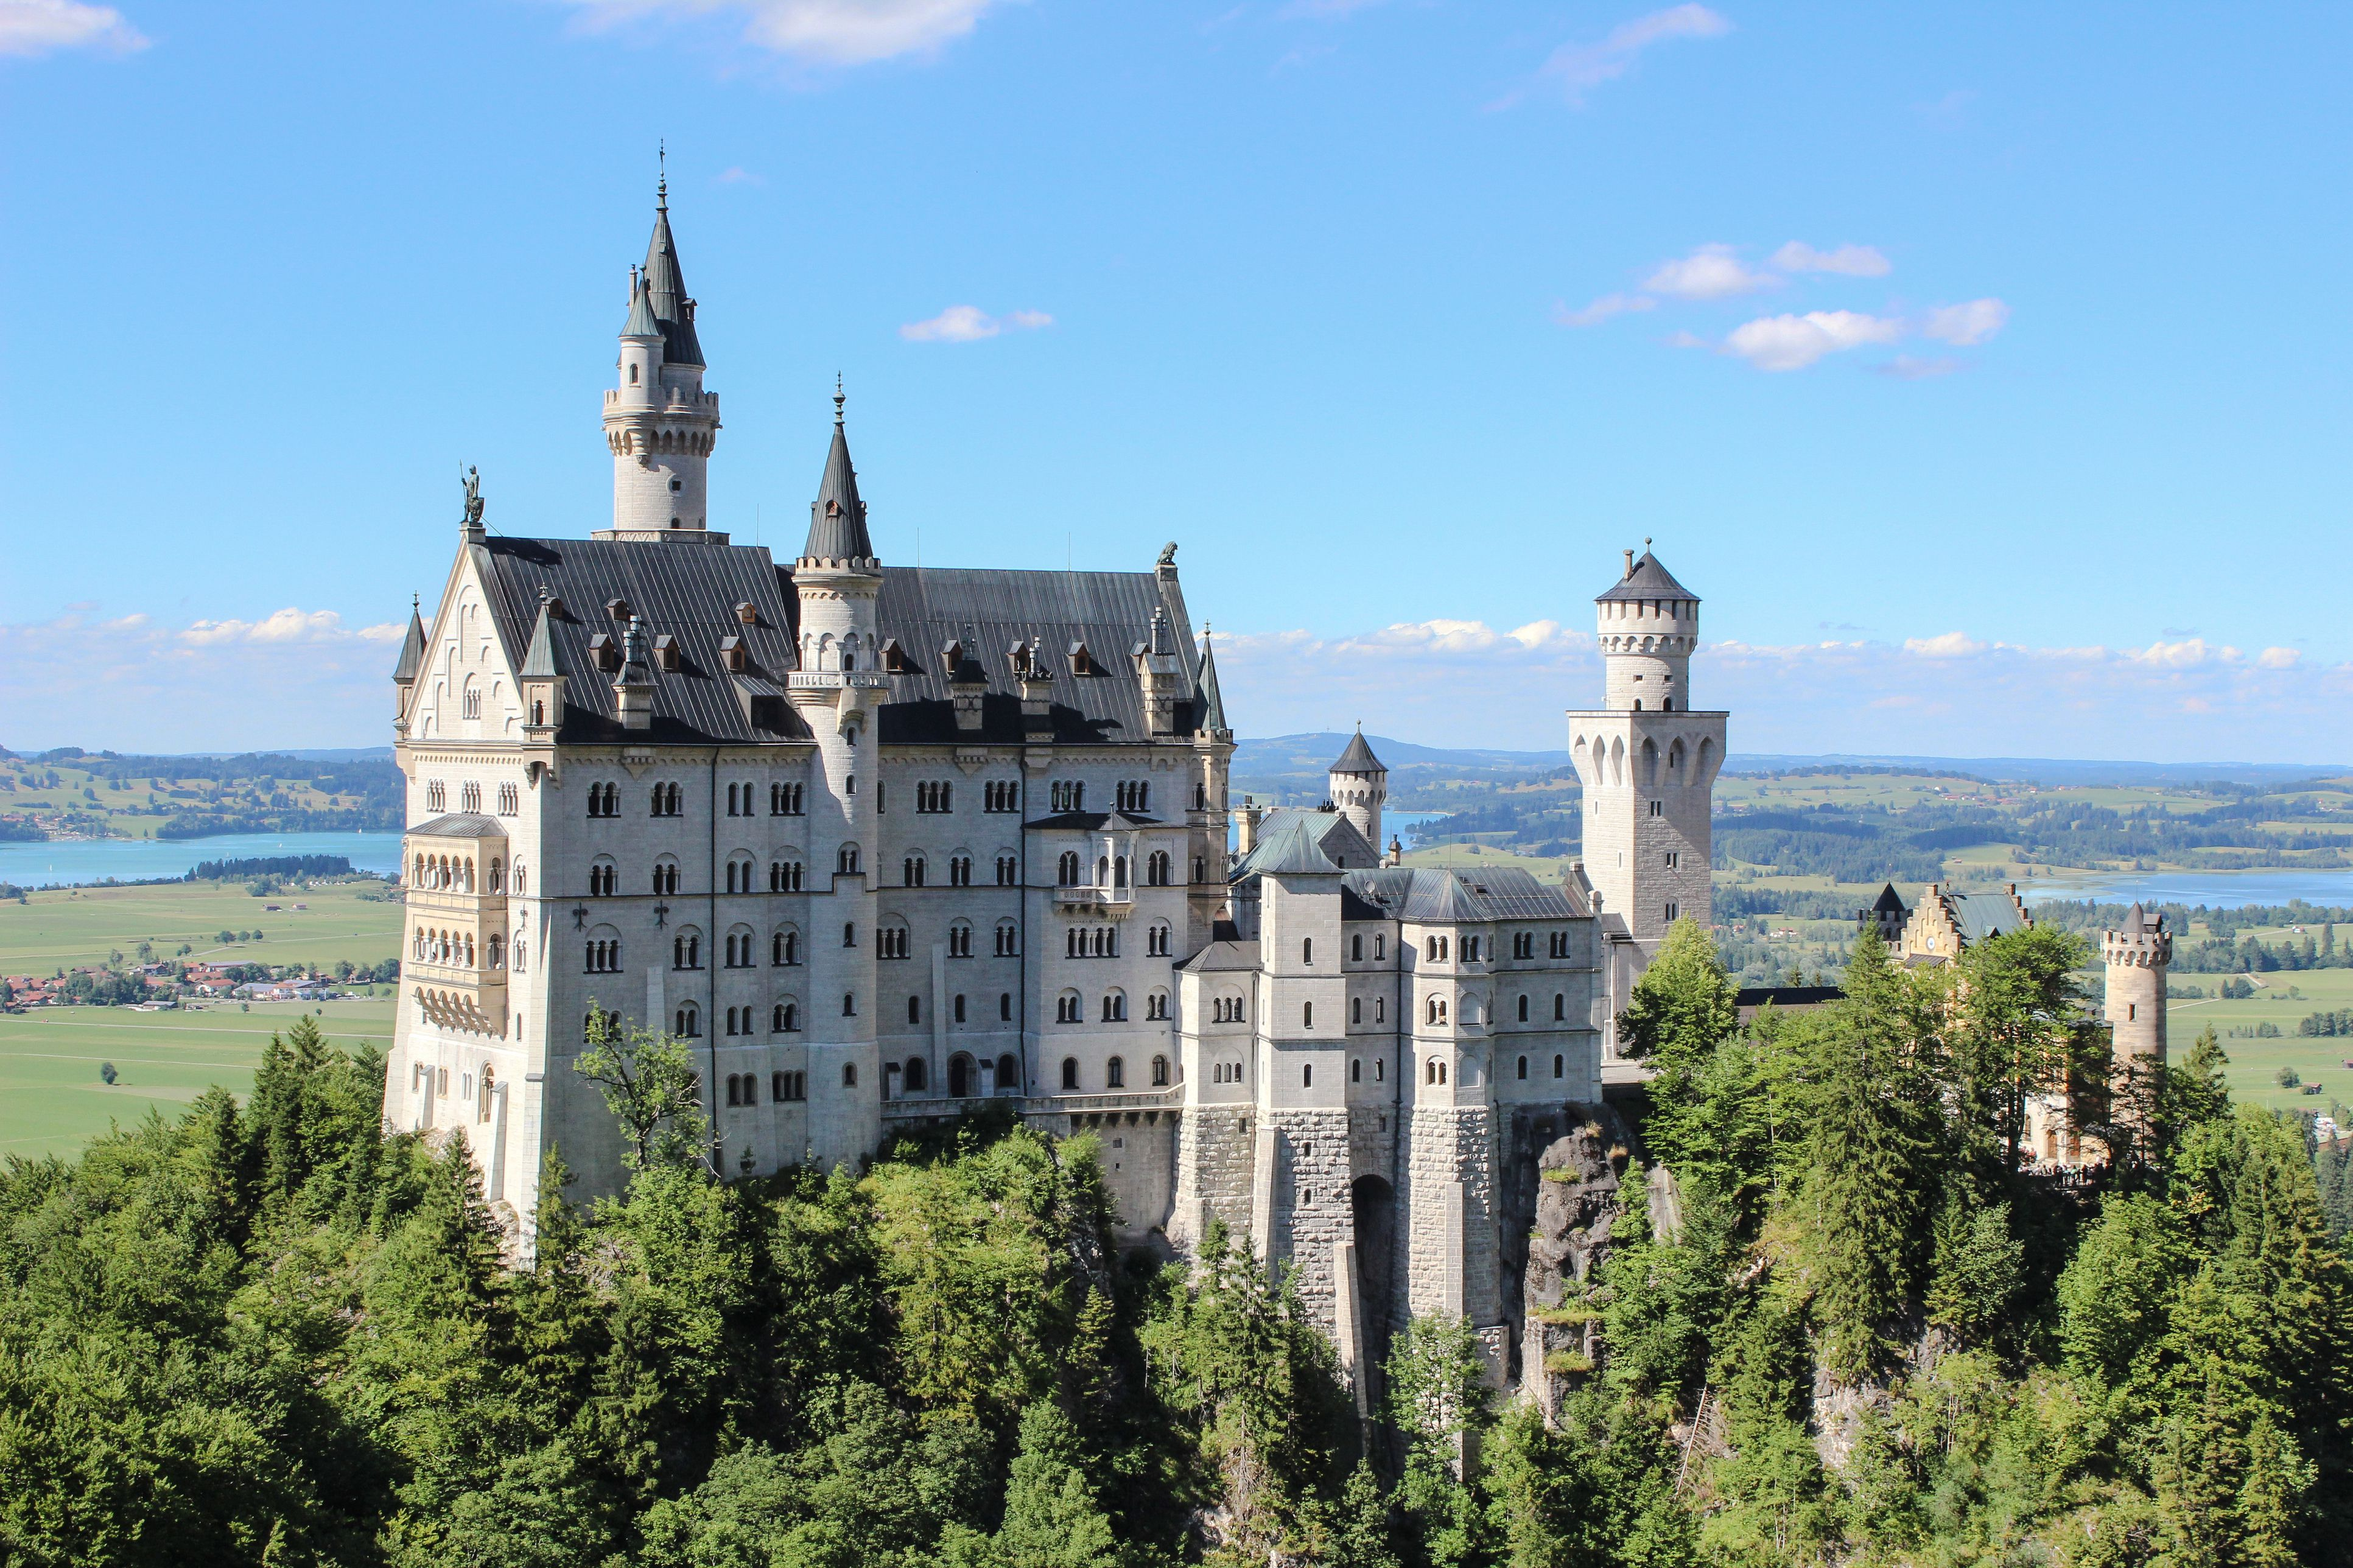 Top Places to Visit in the South of Germany